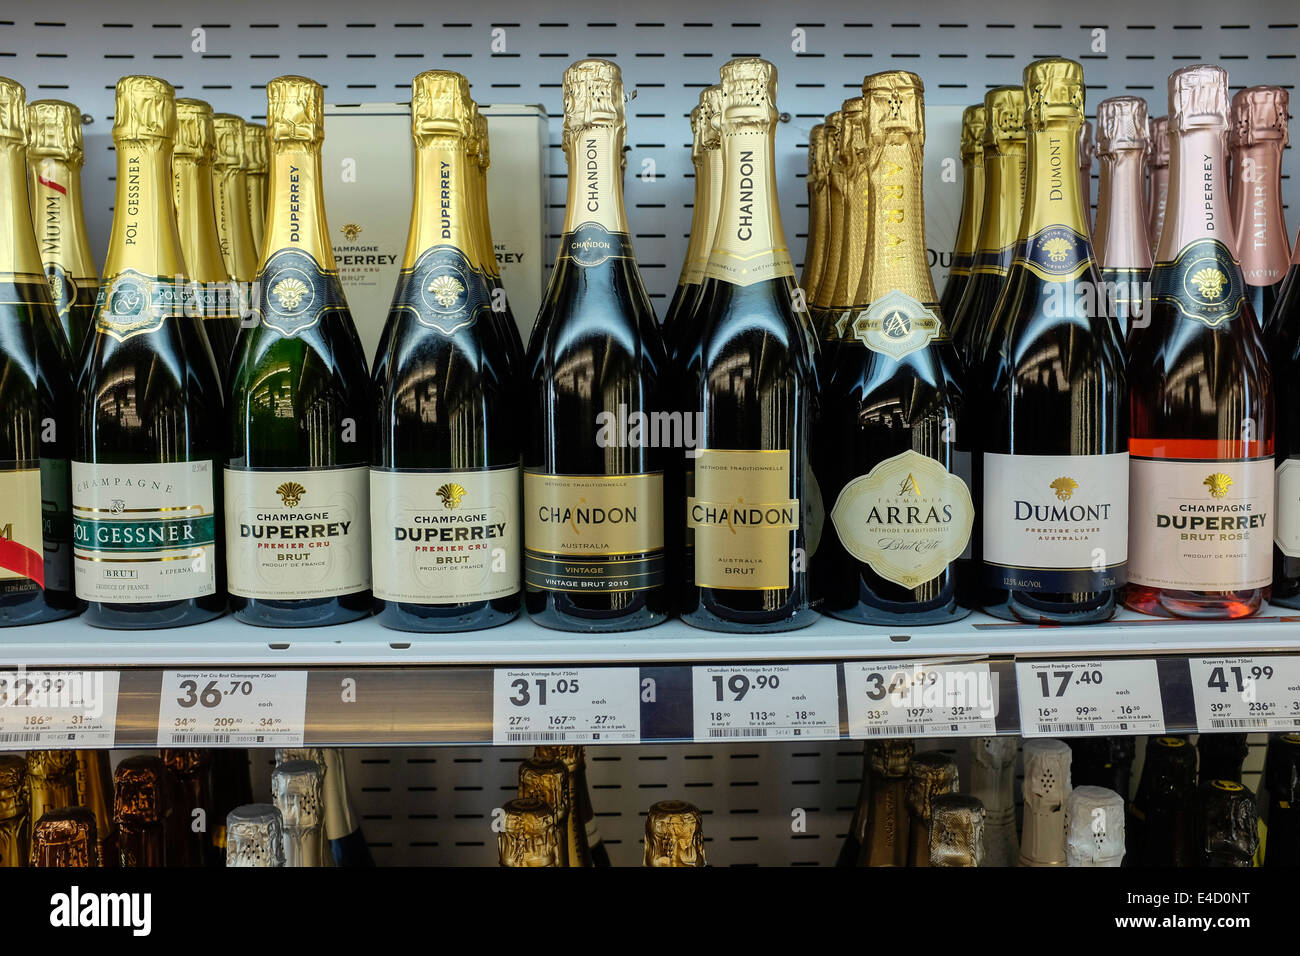 A selection of sparkling wines in a liquor store in Australia - Stock Image